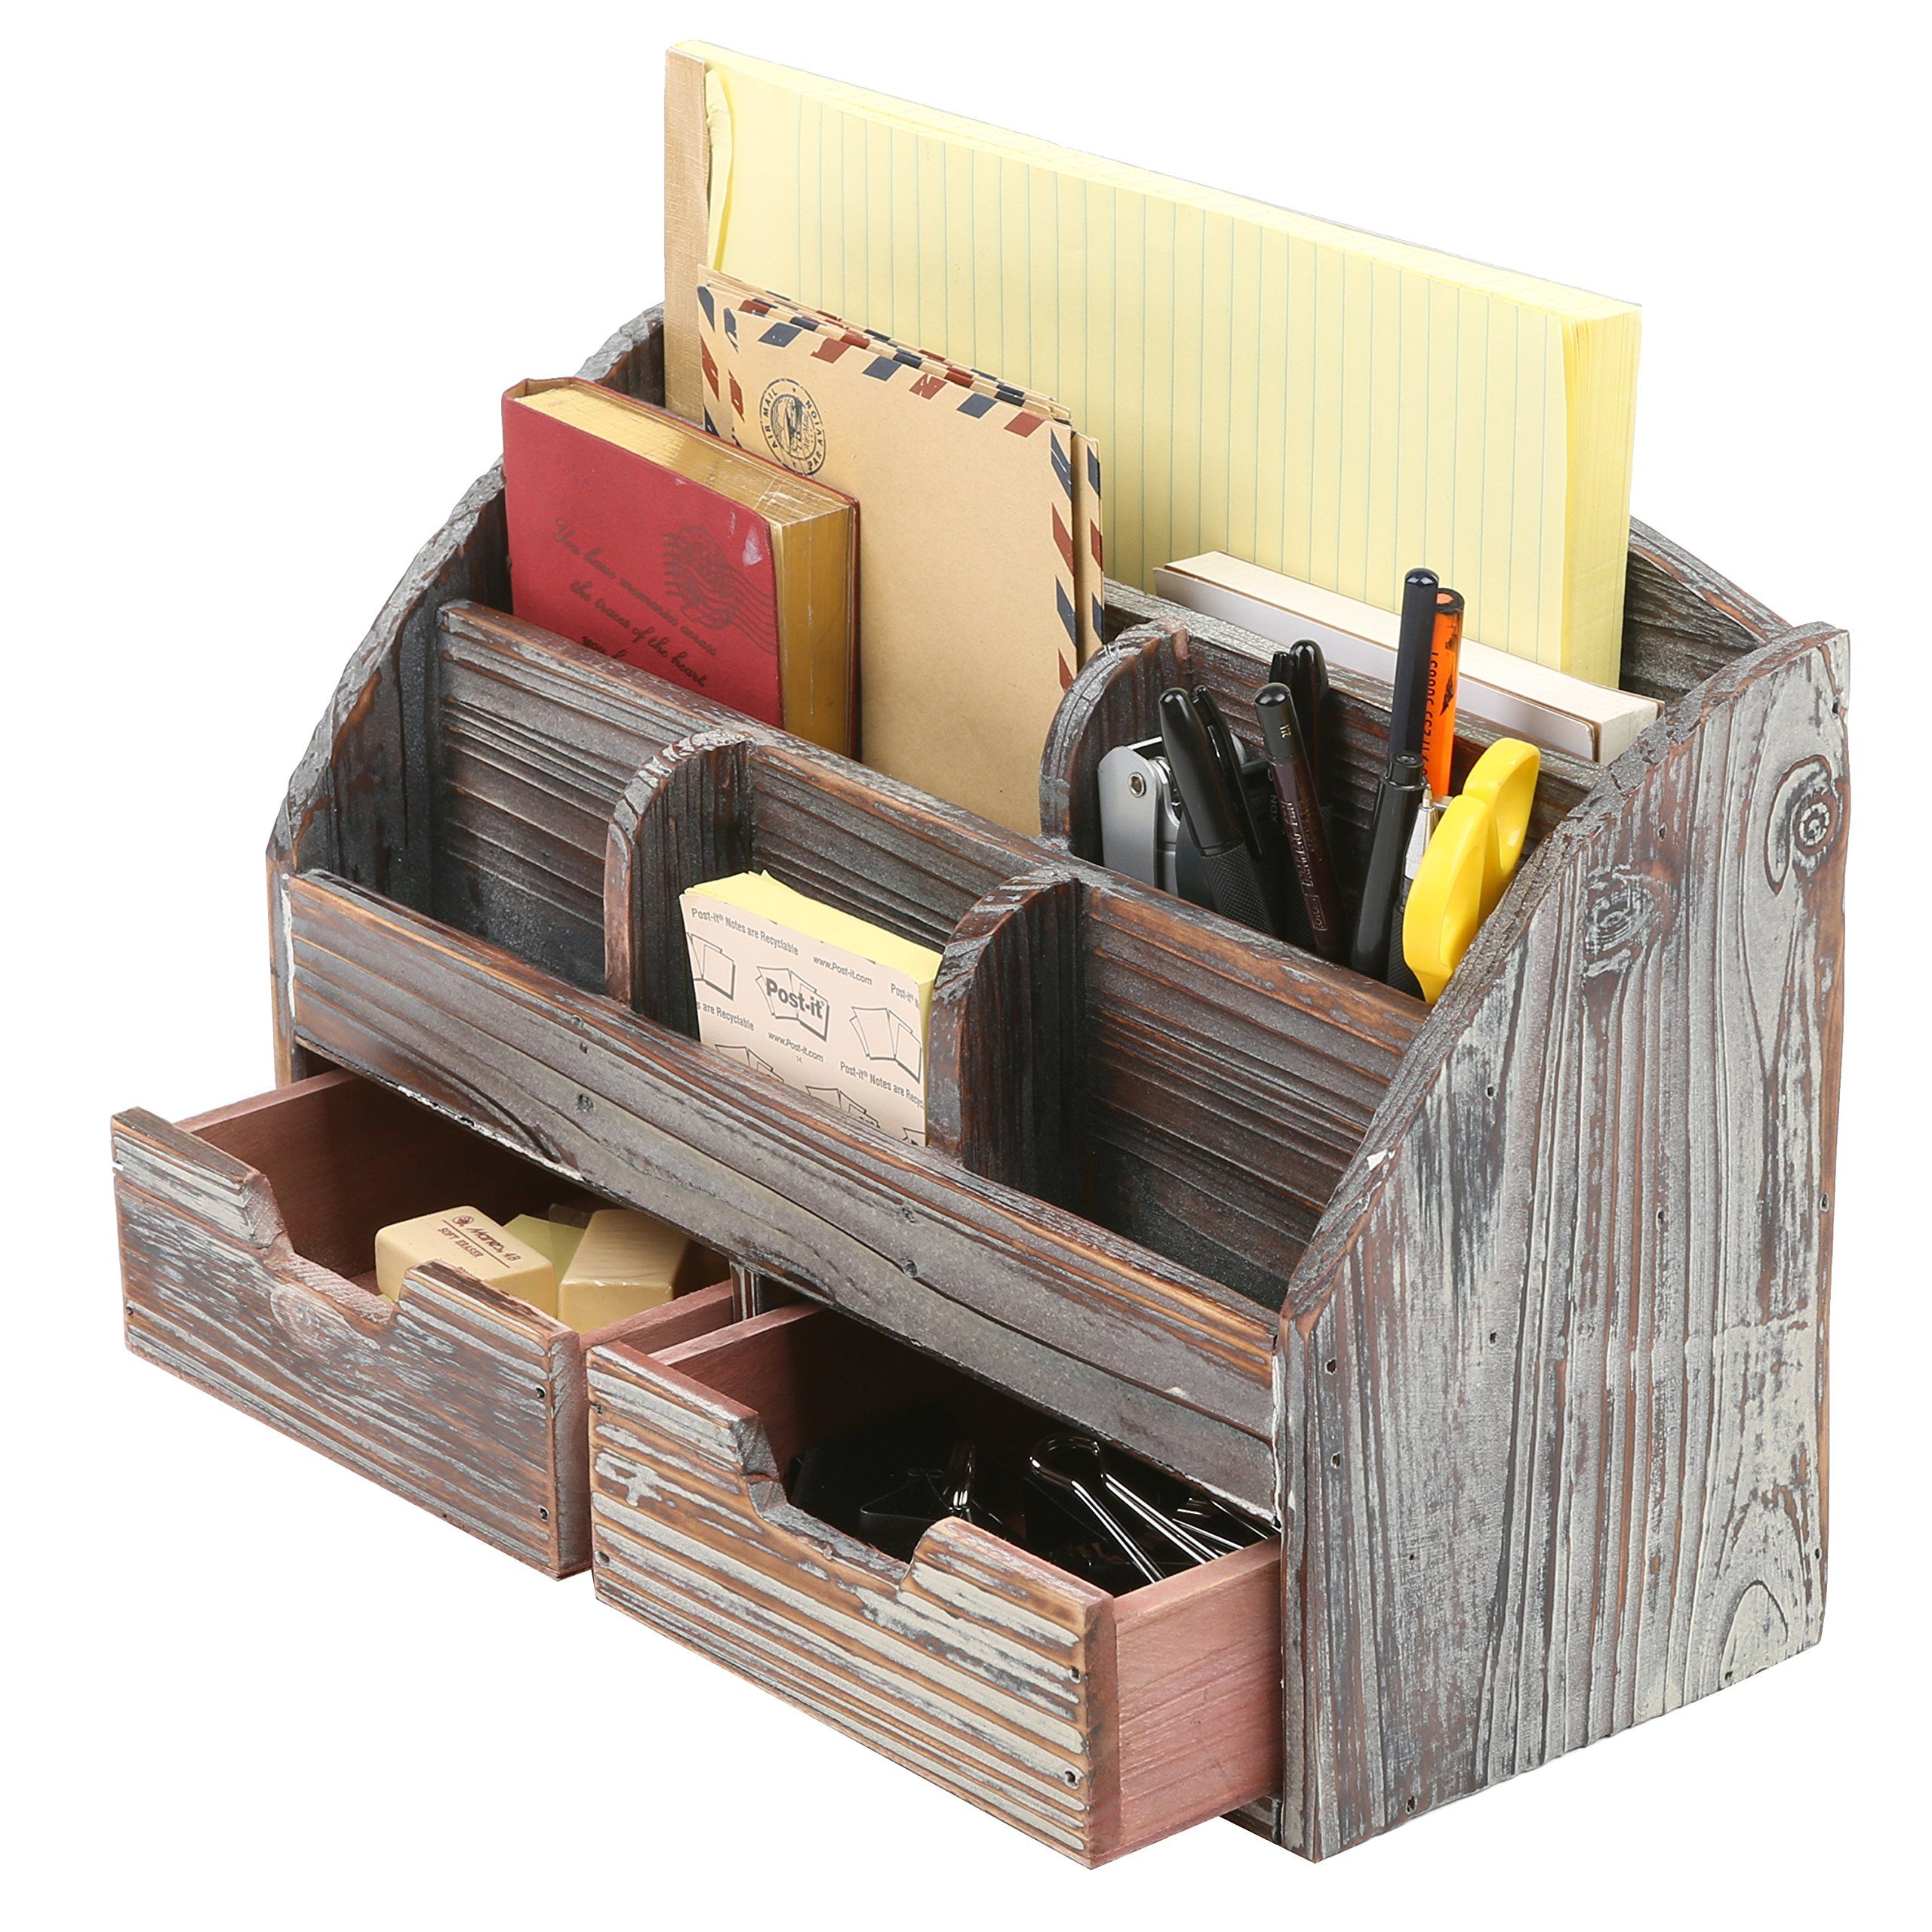 Mygift Distressed Wood Desk Organizer 6 Compartment 2 Drawer Supplies Rack Brown Click On The Im Distressed Wood Desk Desk Organization Wooden Desk Organizer